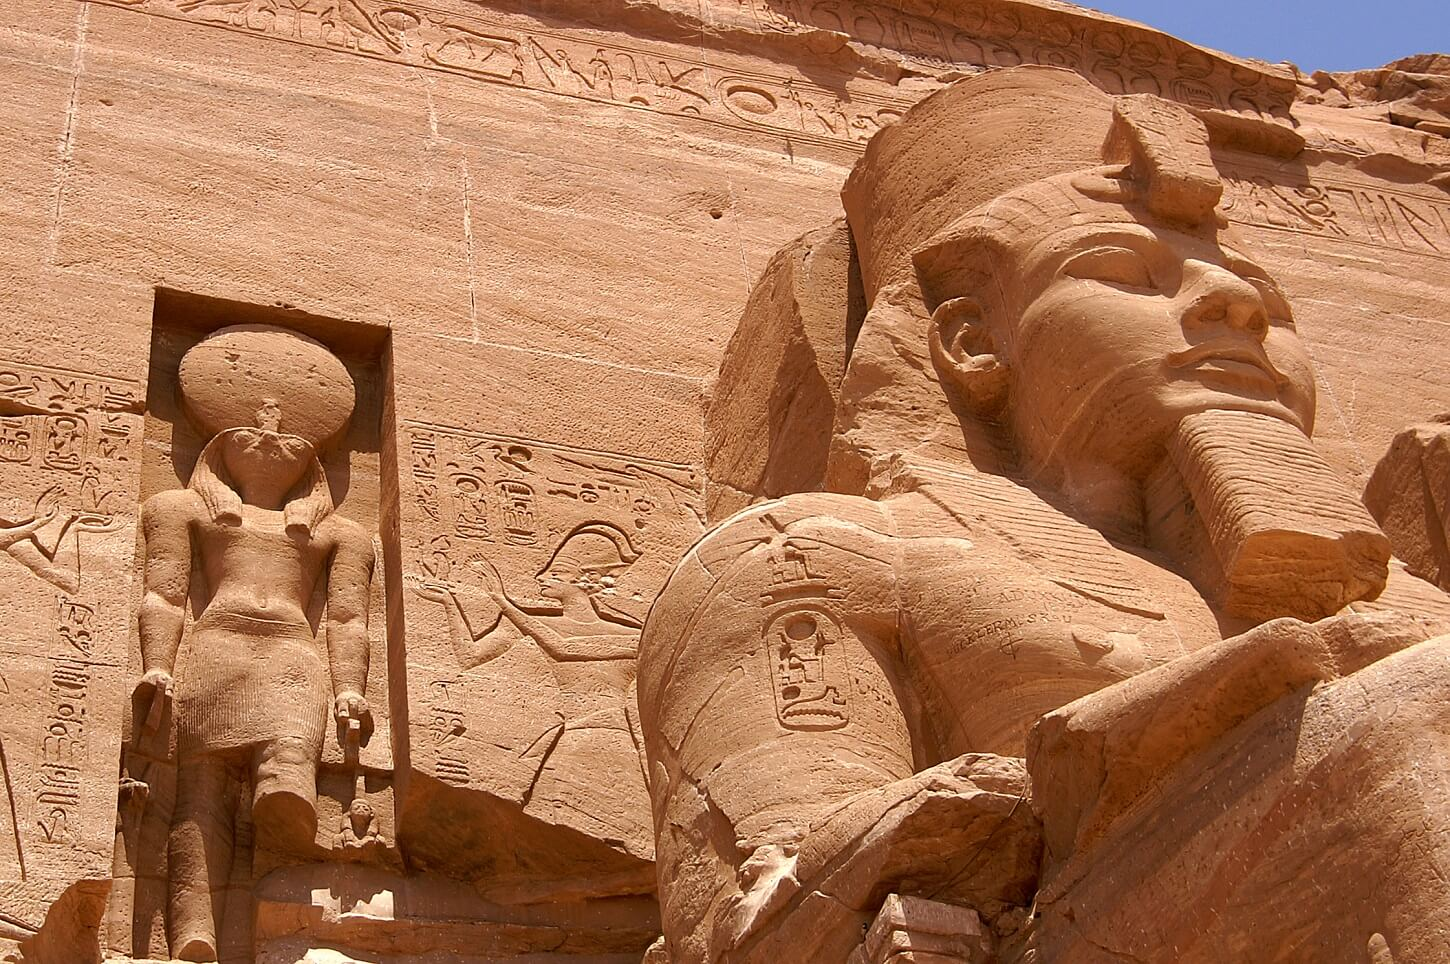 Colosse du grand temple à Abou Simbel